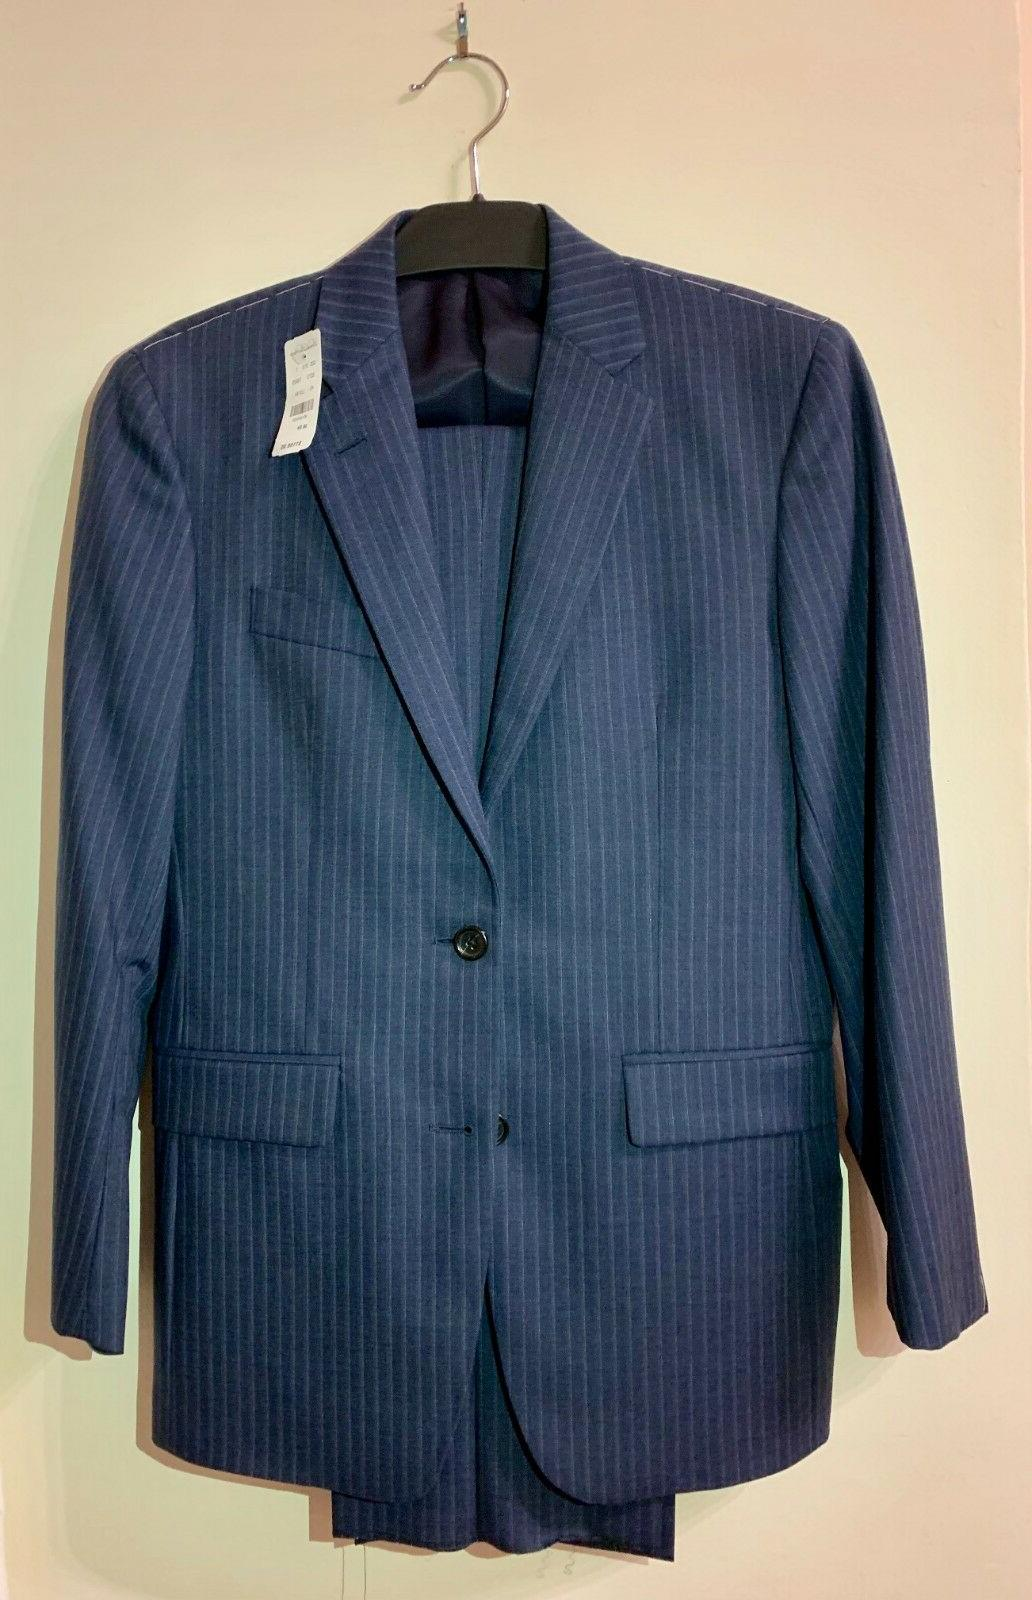 NWT Brothers Fit 1818 Suit $1198